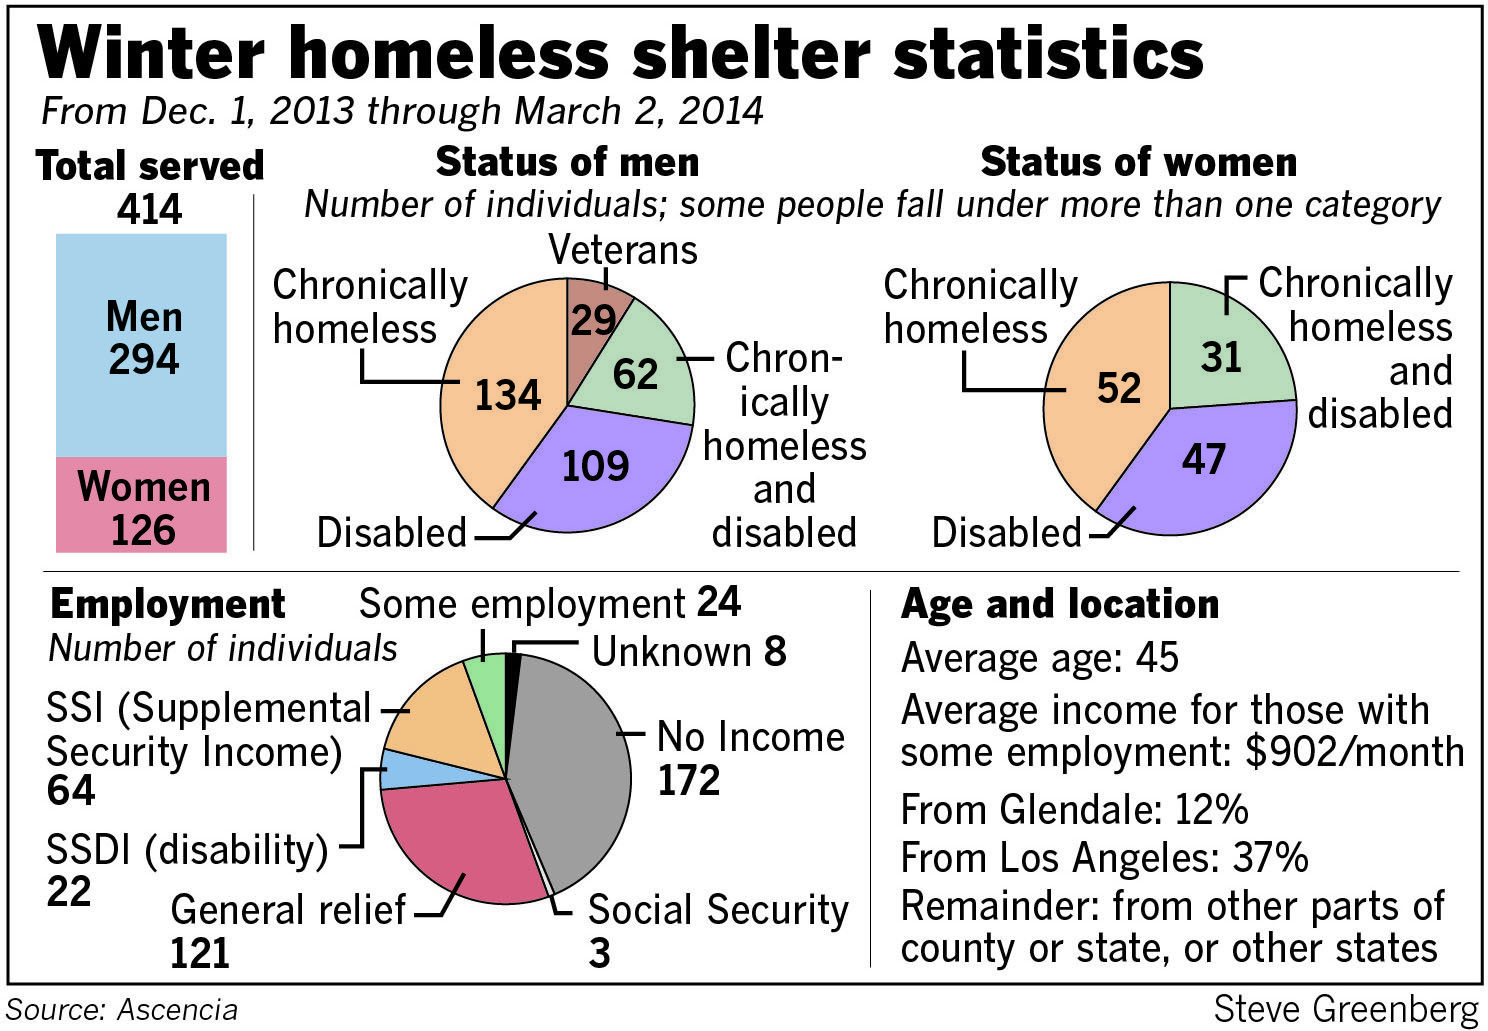 Since opening its doors on Dec. 1 for 92 nights, the Glendale emergency winter shelter, which for the first time in years took place at a location other than the National Guard Armory, has served 414 people, according to data released by shelter officials this week.